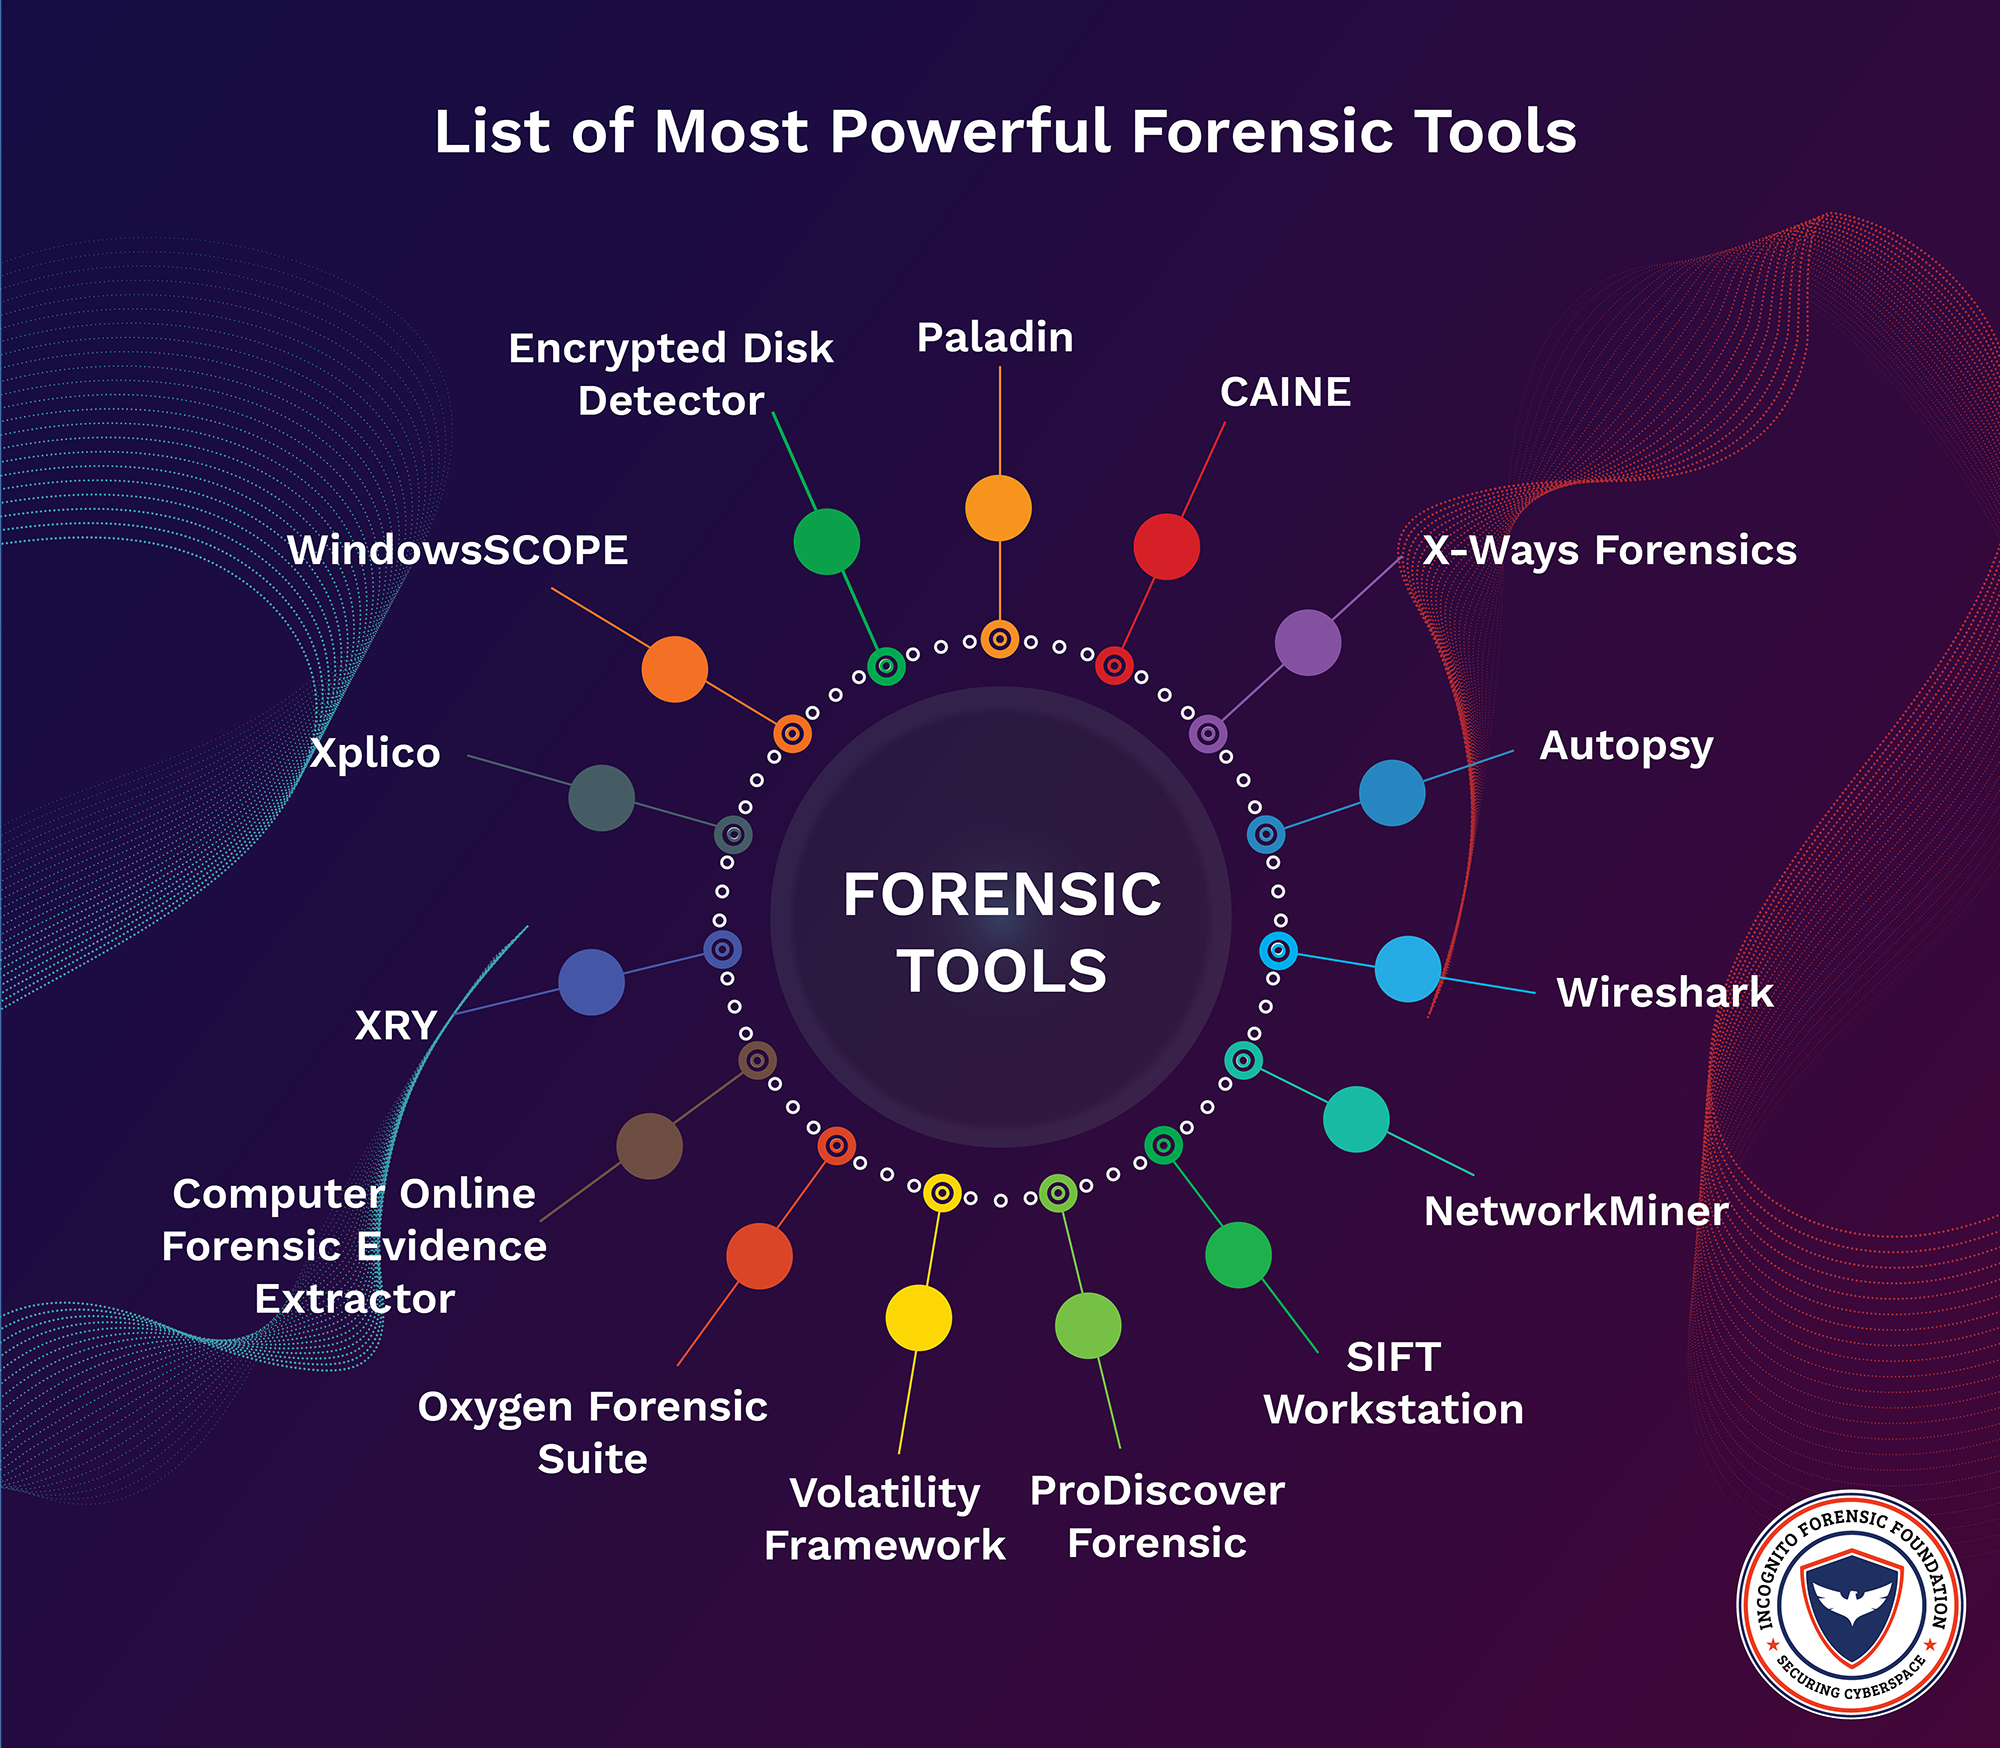 List Of 15 Most Powerful Forensic Tools Used By Law Enforcement Agencies